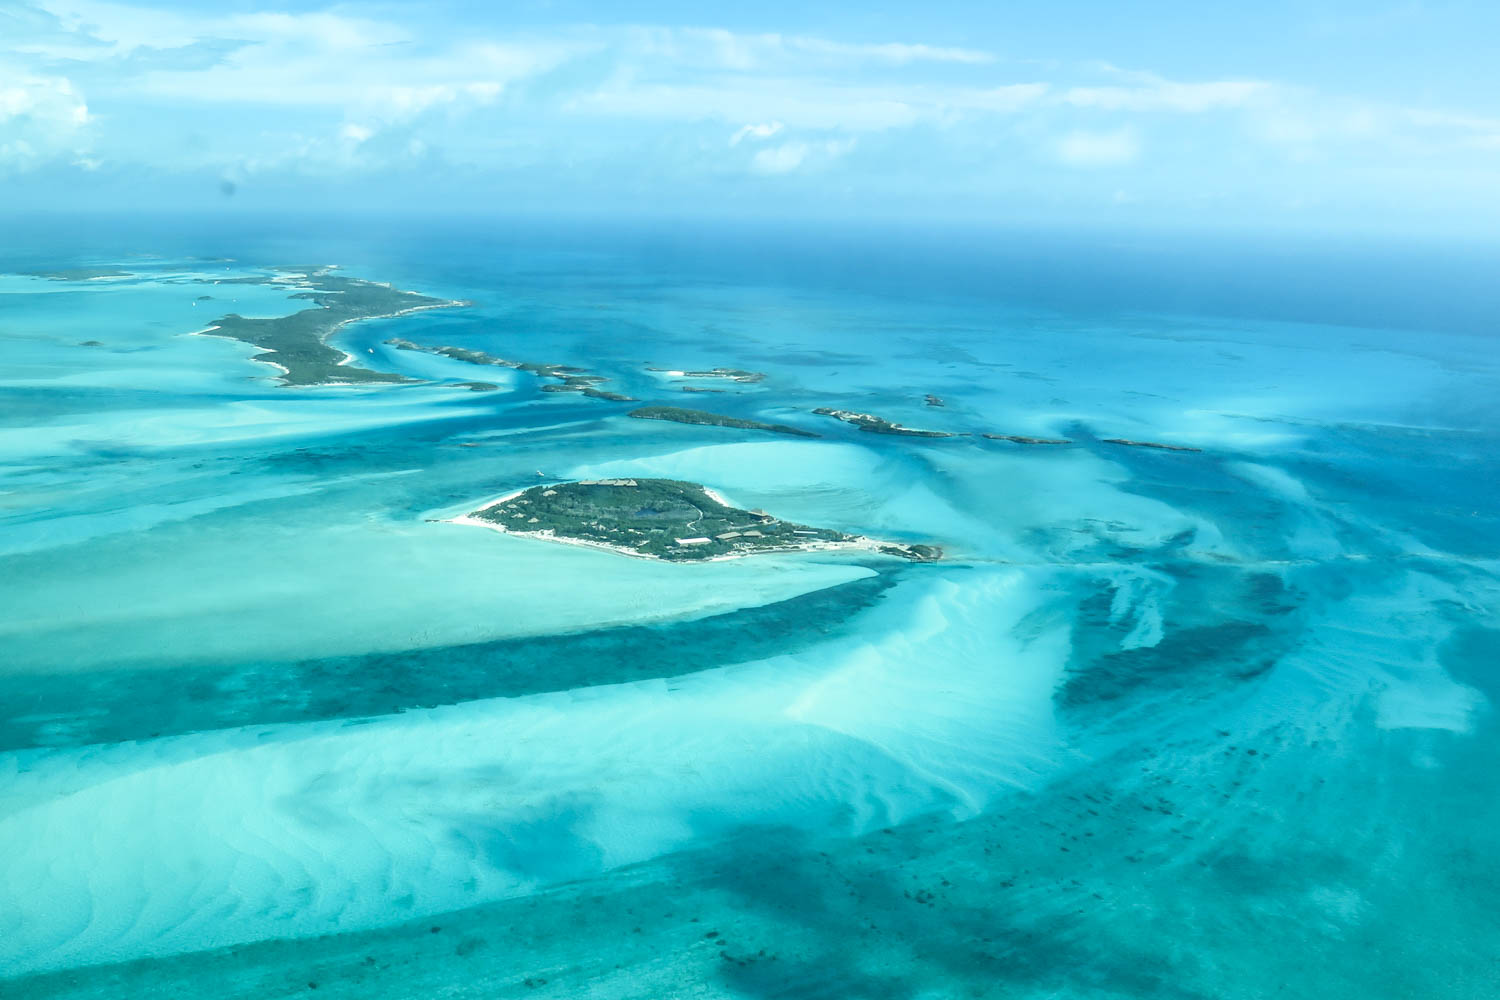 Pig Island tours from Nassau to Exuma. Fly over the stunning Exuma Cays chain of islands on a pig beach excursion from Nassau by Plane. Pig Beach is called Big Major Cay island and located in the Exuma Cays Bahamas.